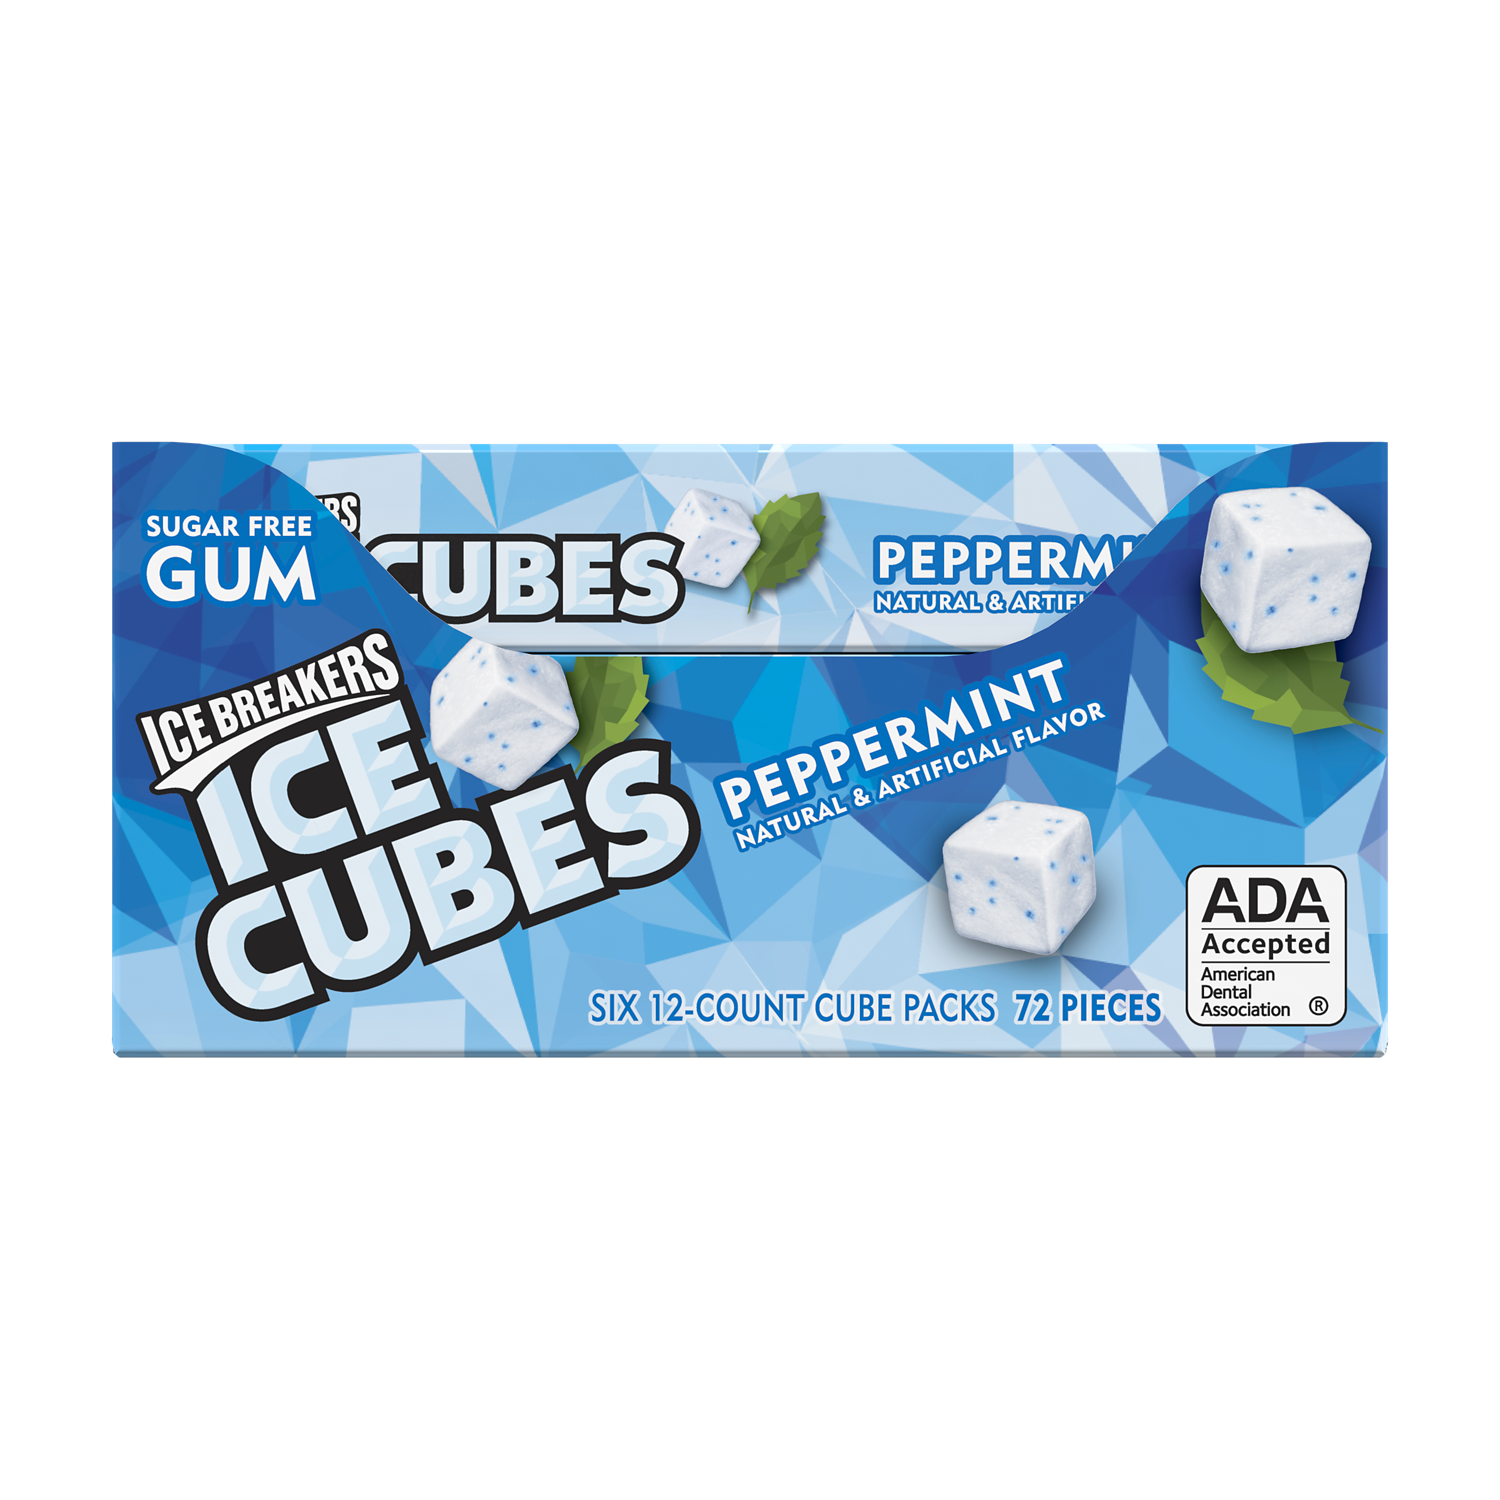 ICE BREAKERS ICE CUBES Peppermint Sugar Free Gum, 0.976 oz box, 12 count - Front of Package